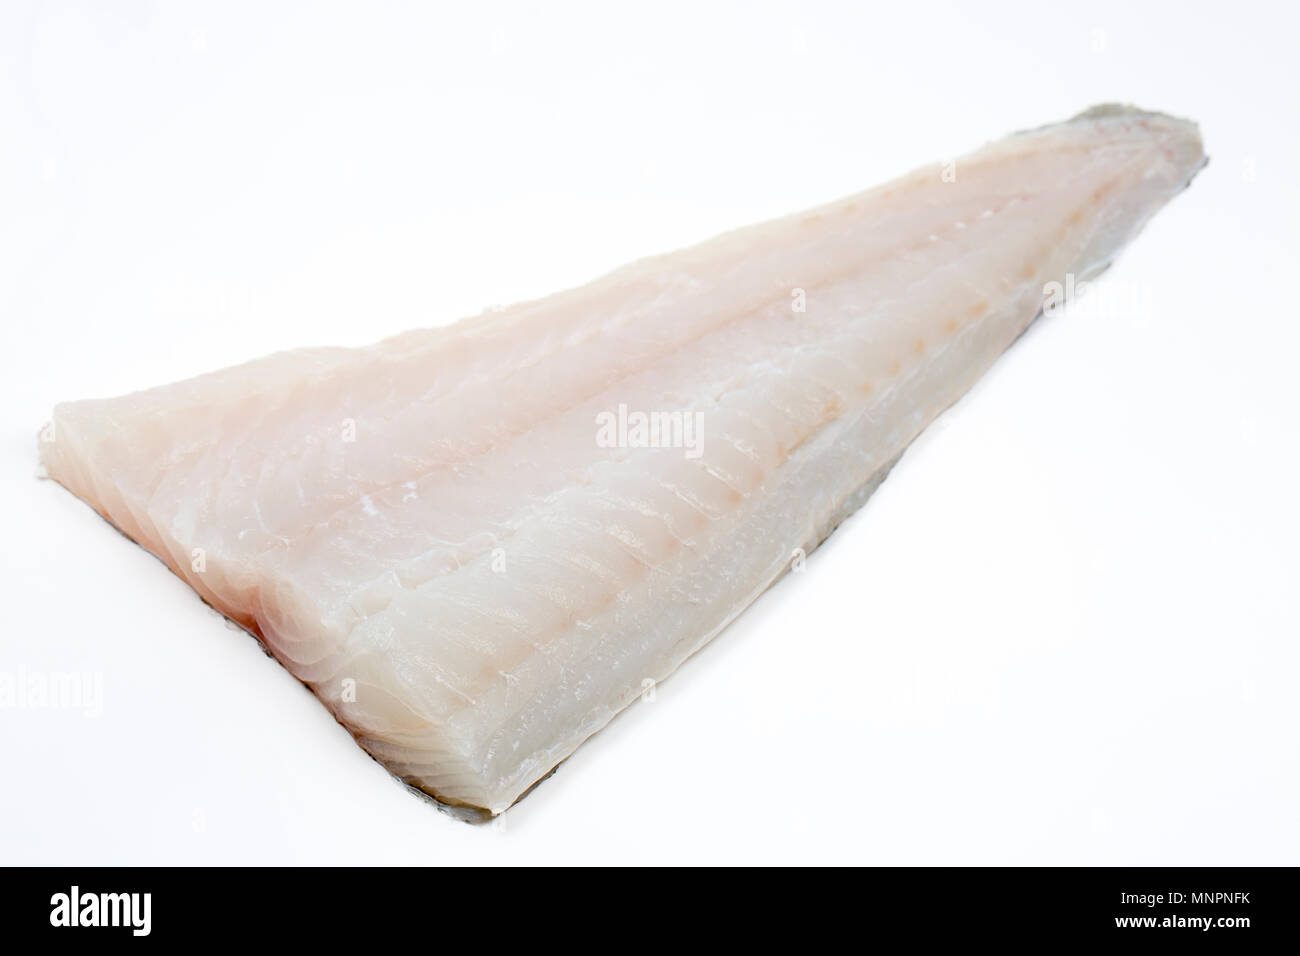 A fillet of pollack, Pollachius pollachius, that was caught on a lure with rod and line from a private boat in the English Channel off the coast of Do - Stock Image